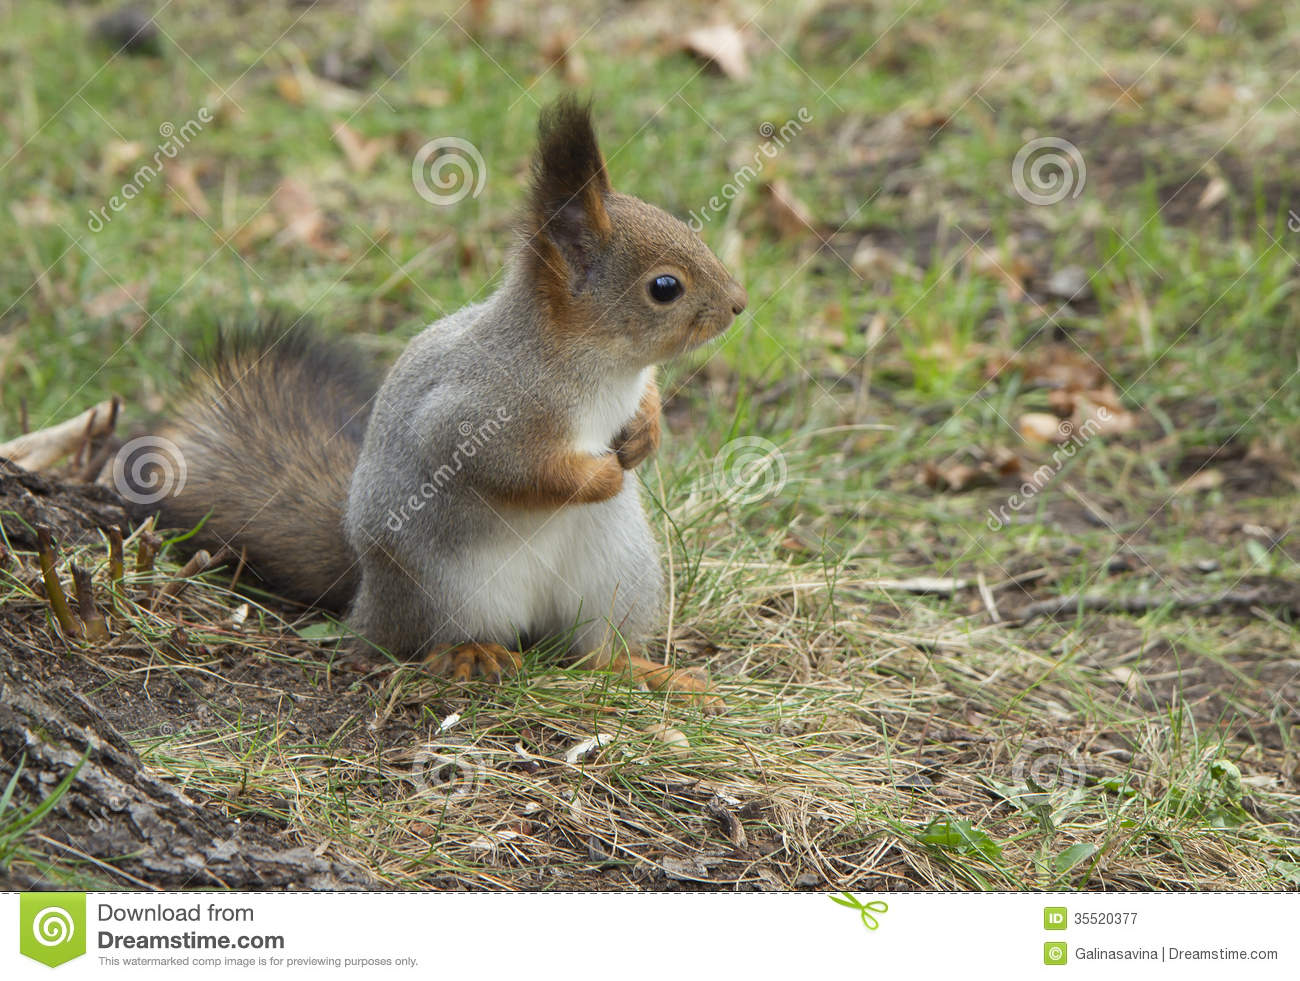 Squirrel is a small beautiful and clever animal with a long body